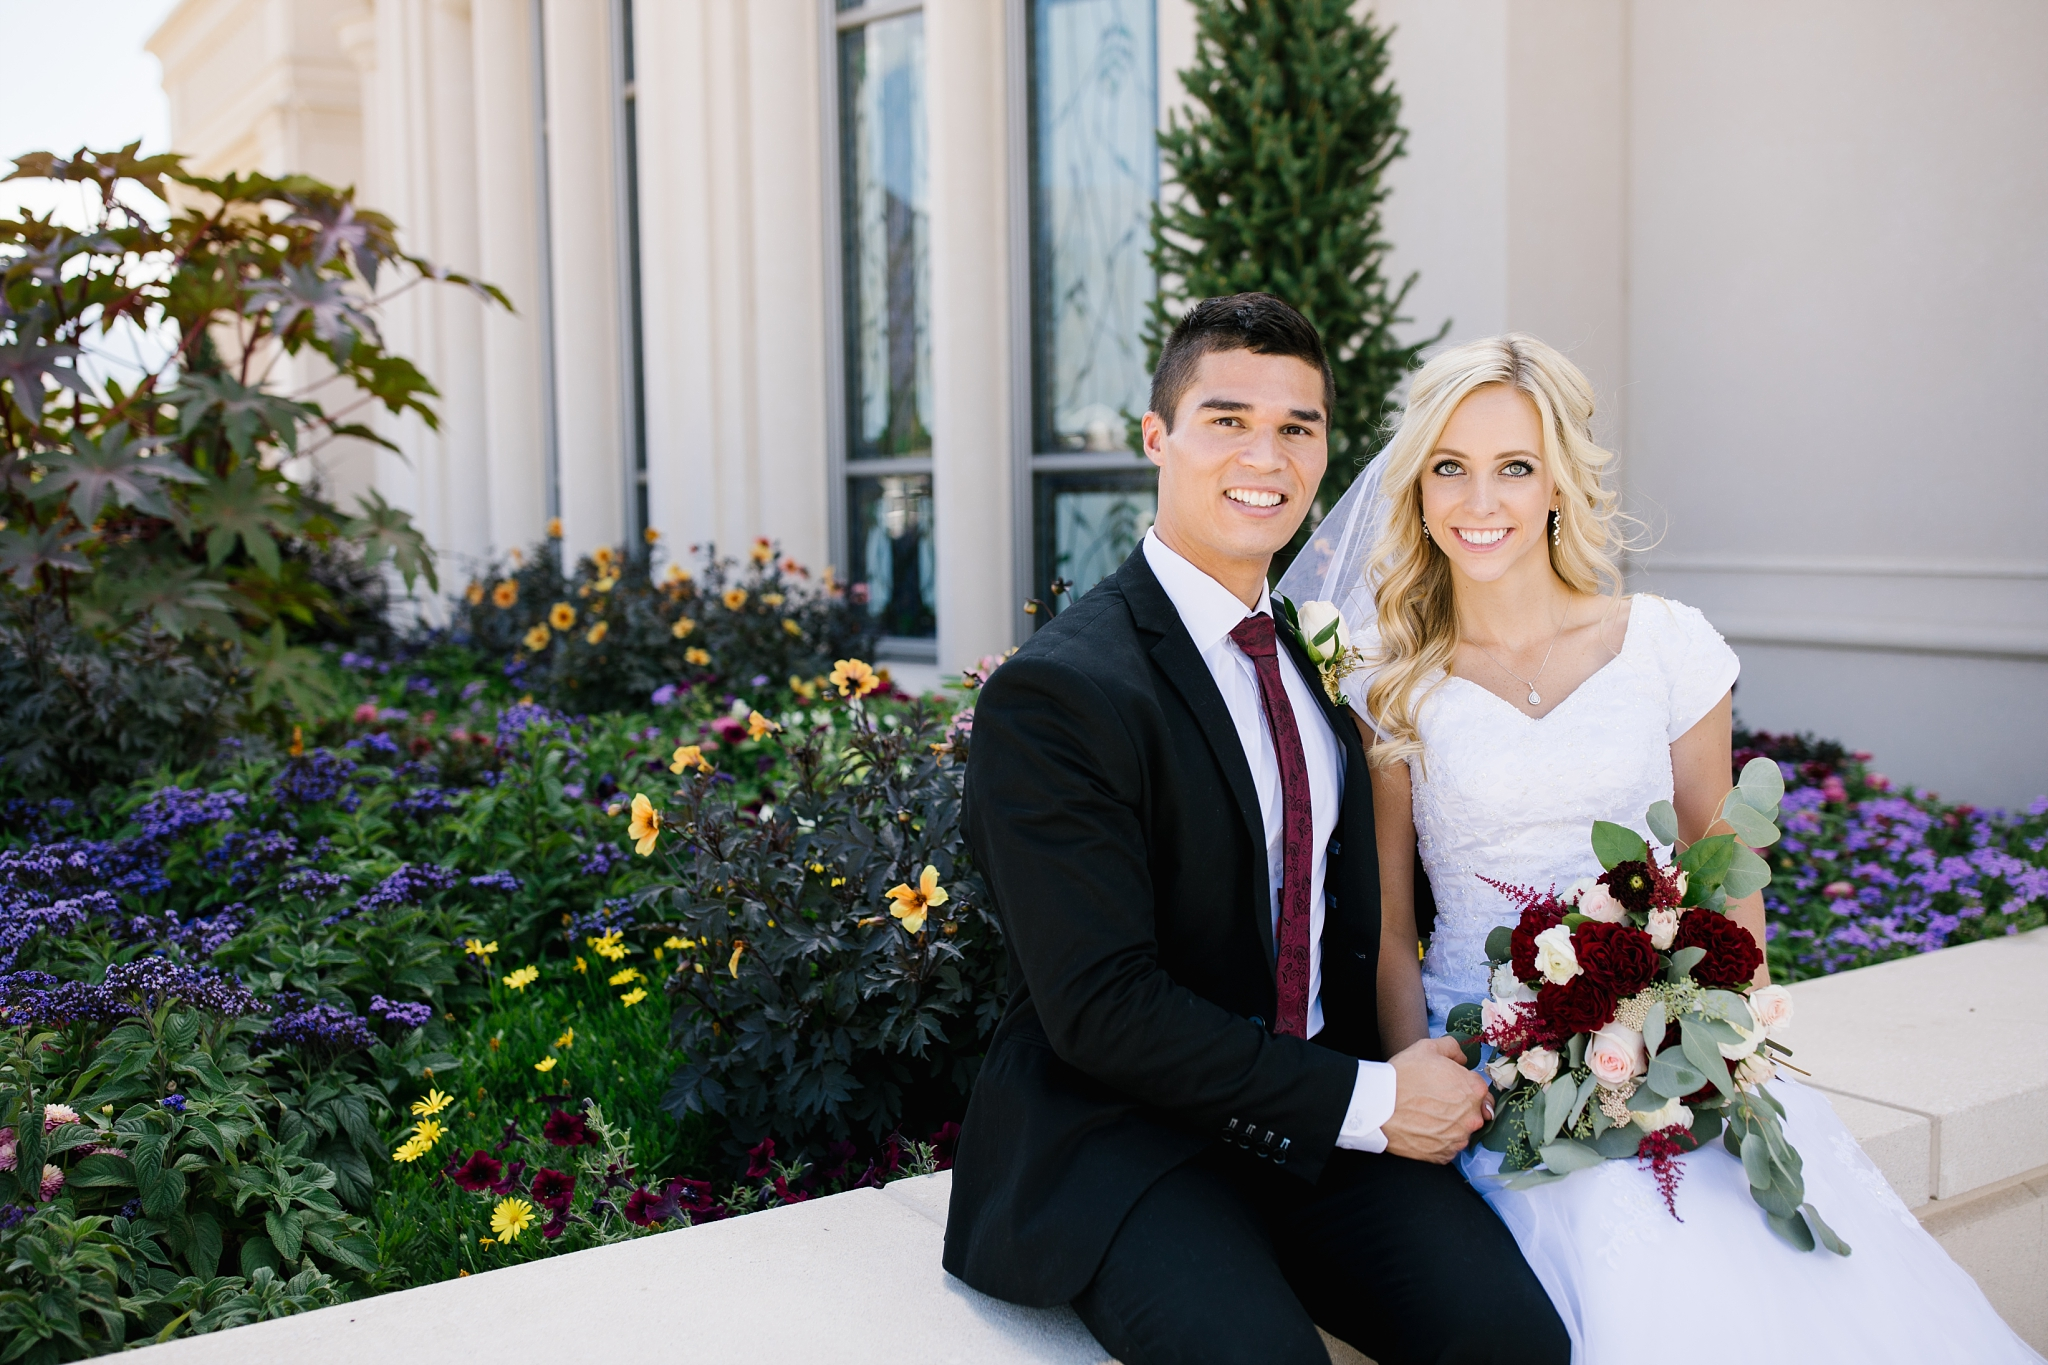 HannahChaseWedding-208_Lizzie-B-Imagery-Utah-Wedding-Photographer-Bridal-Photography-Payson-Utah-Temple-Clarion-Gardens-Catering-and-Events-Center.jpg